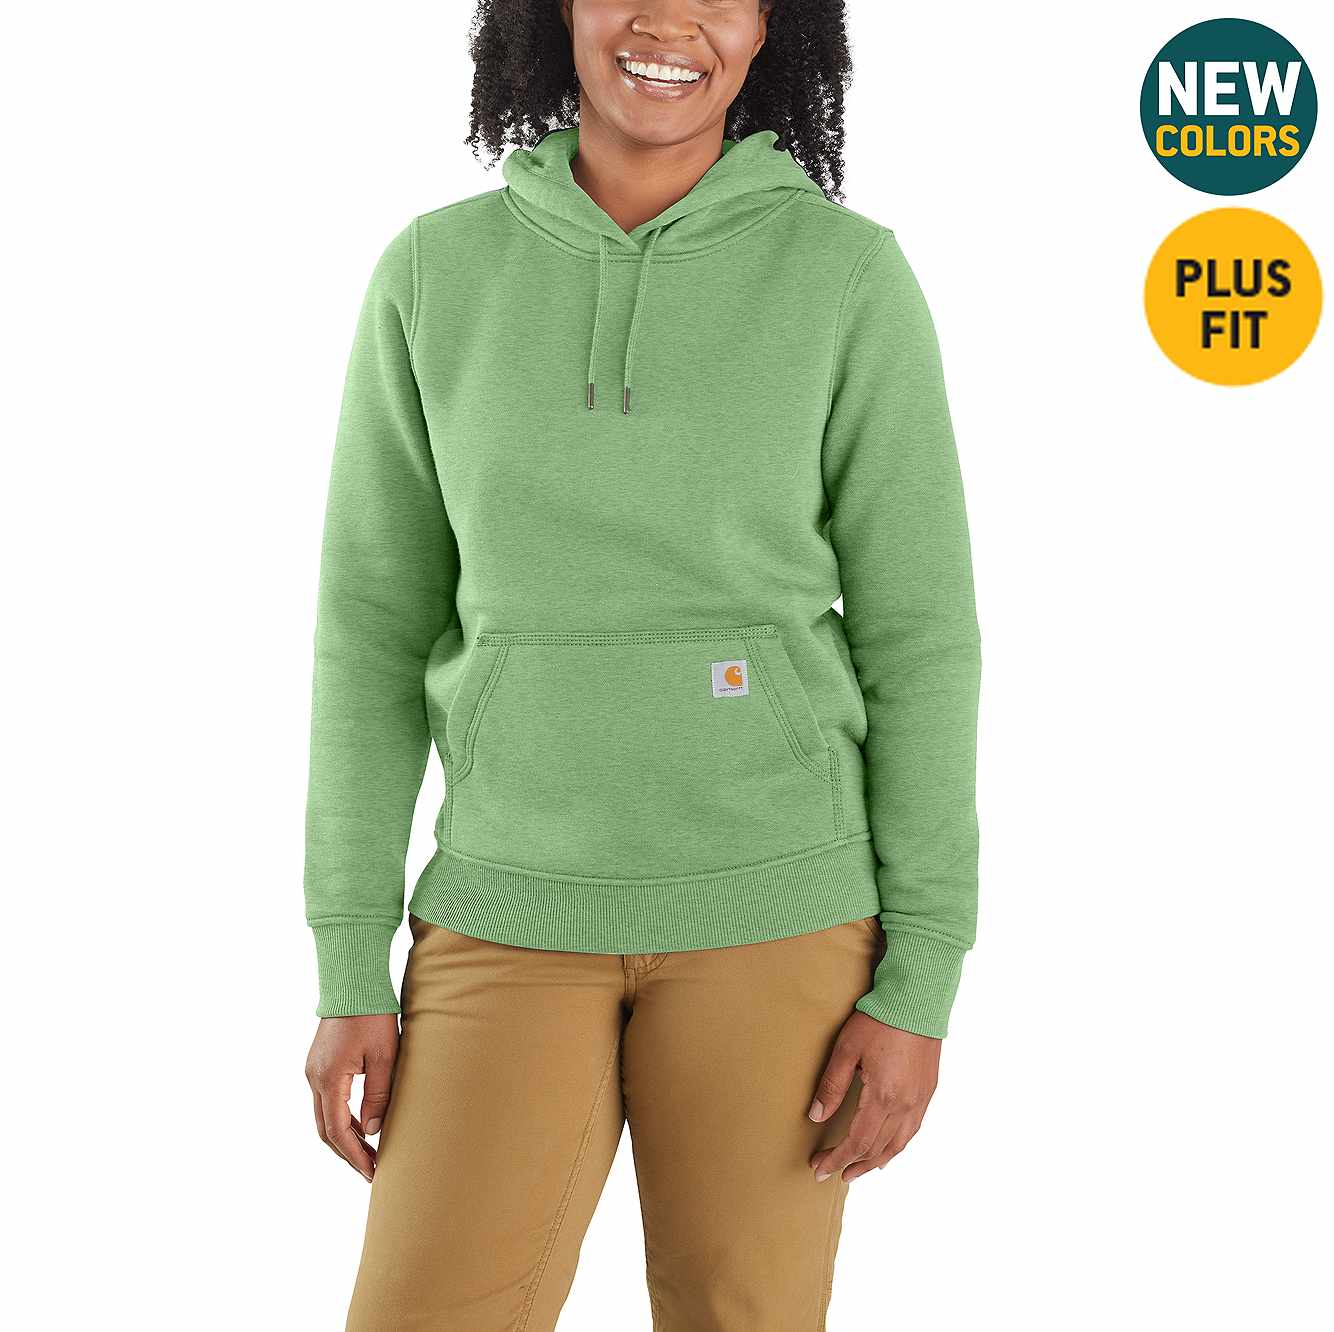 Picture of Clarksburg Pullover Sweatshirt in Boreal Heather